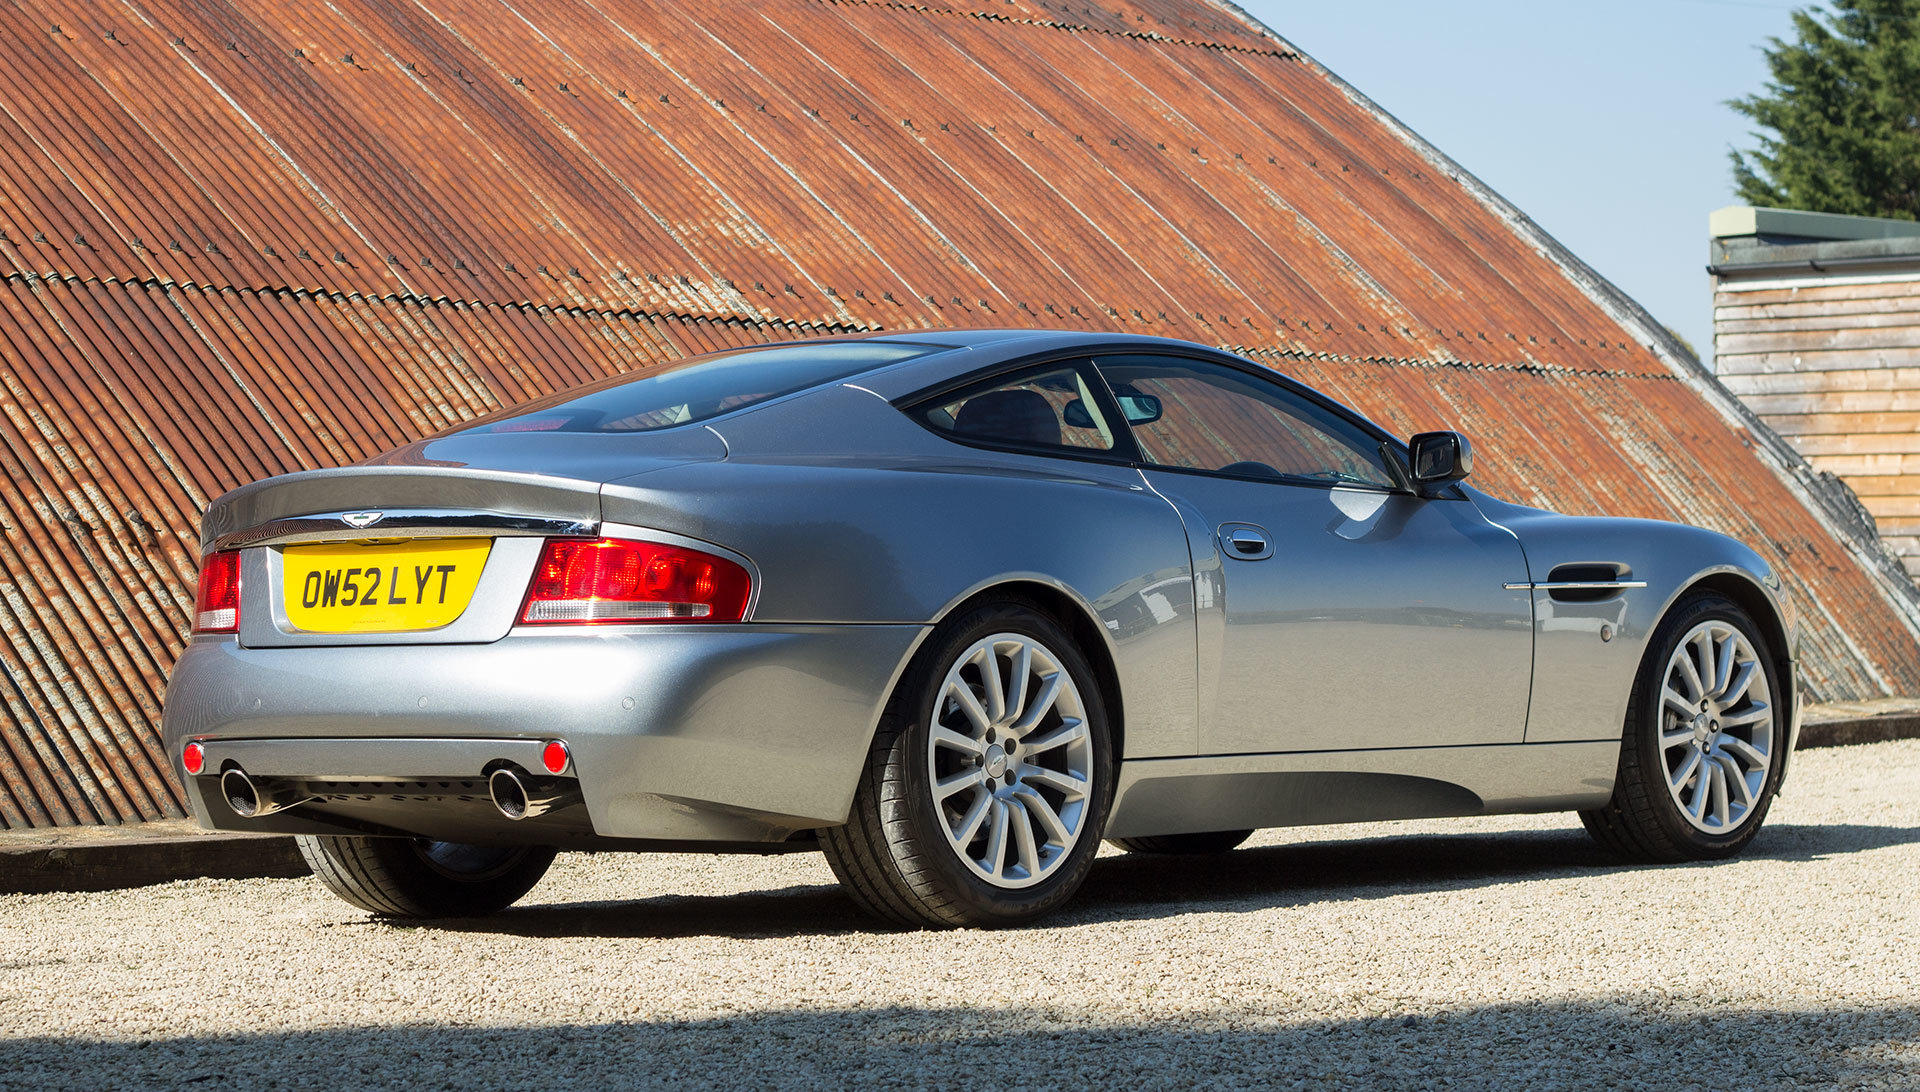 2003 Aston Martin V12 Vanquish - 22,000 miles For Sale (picture 2 of 6)